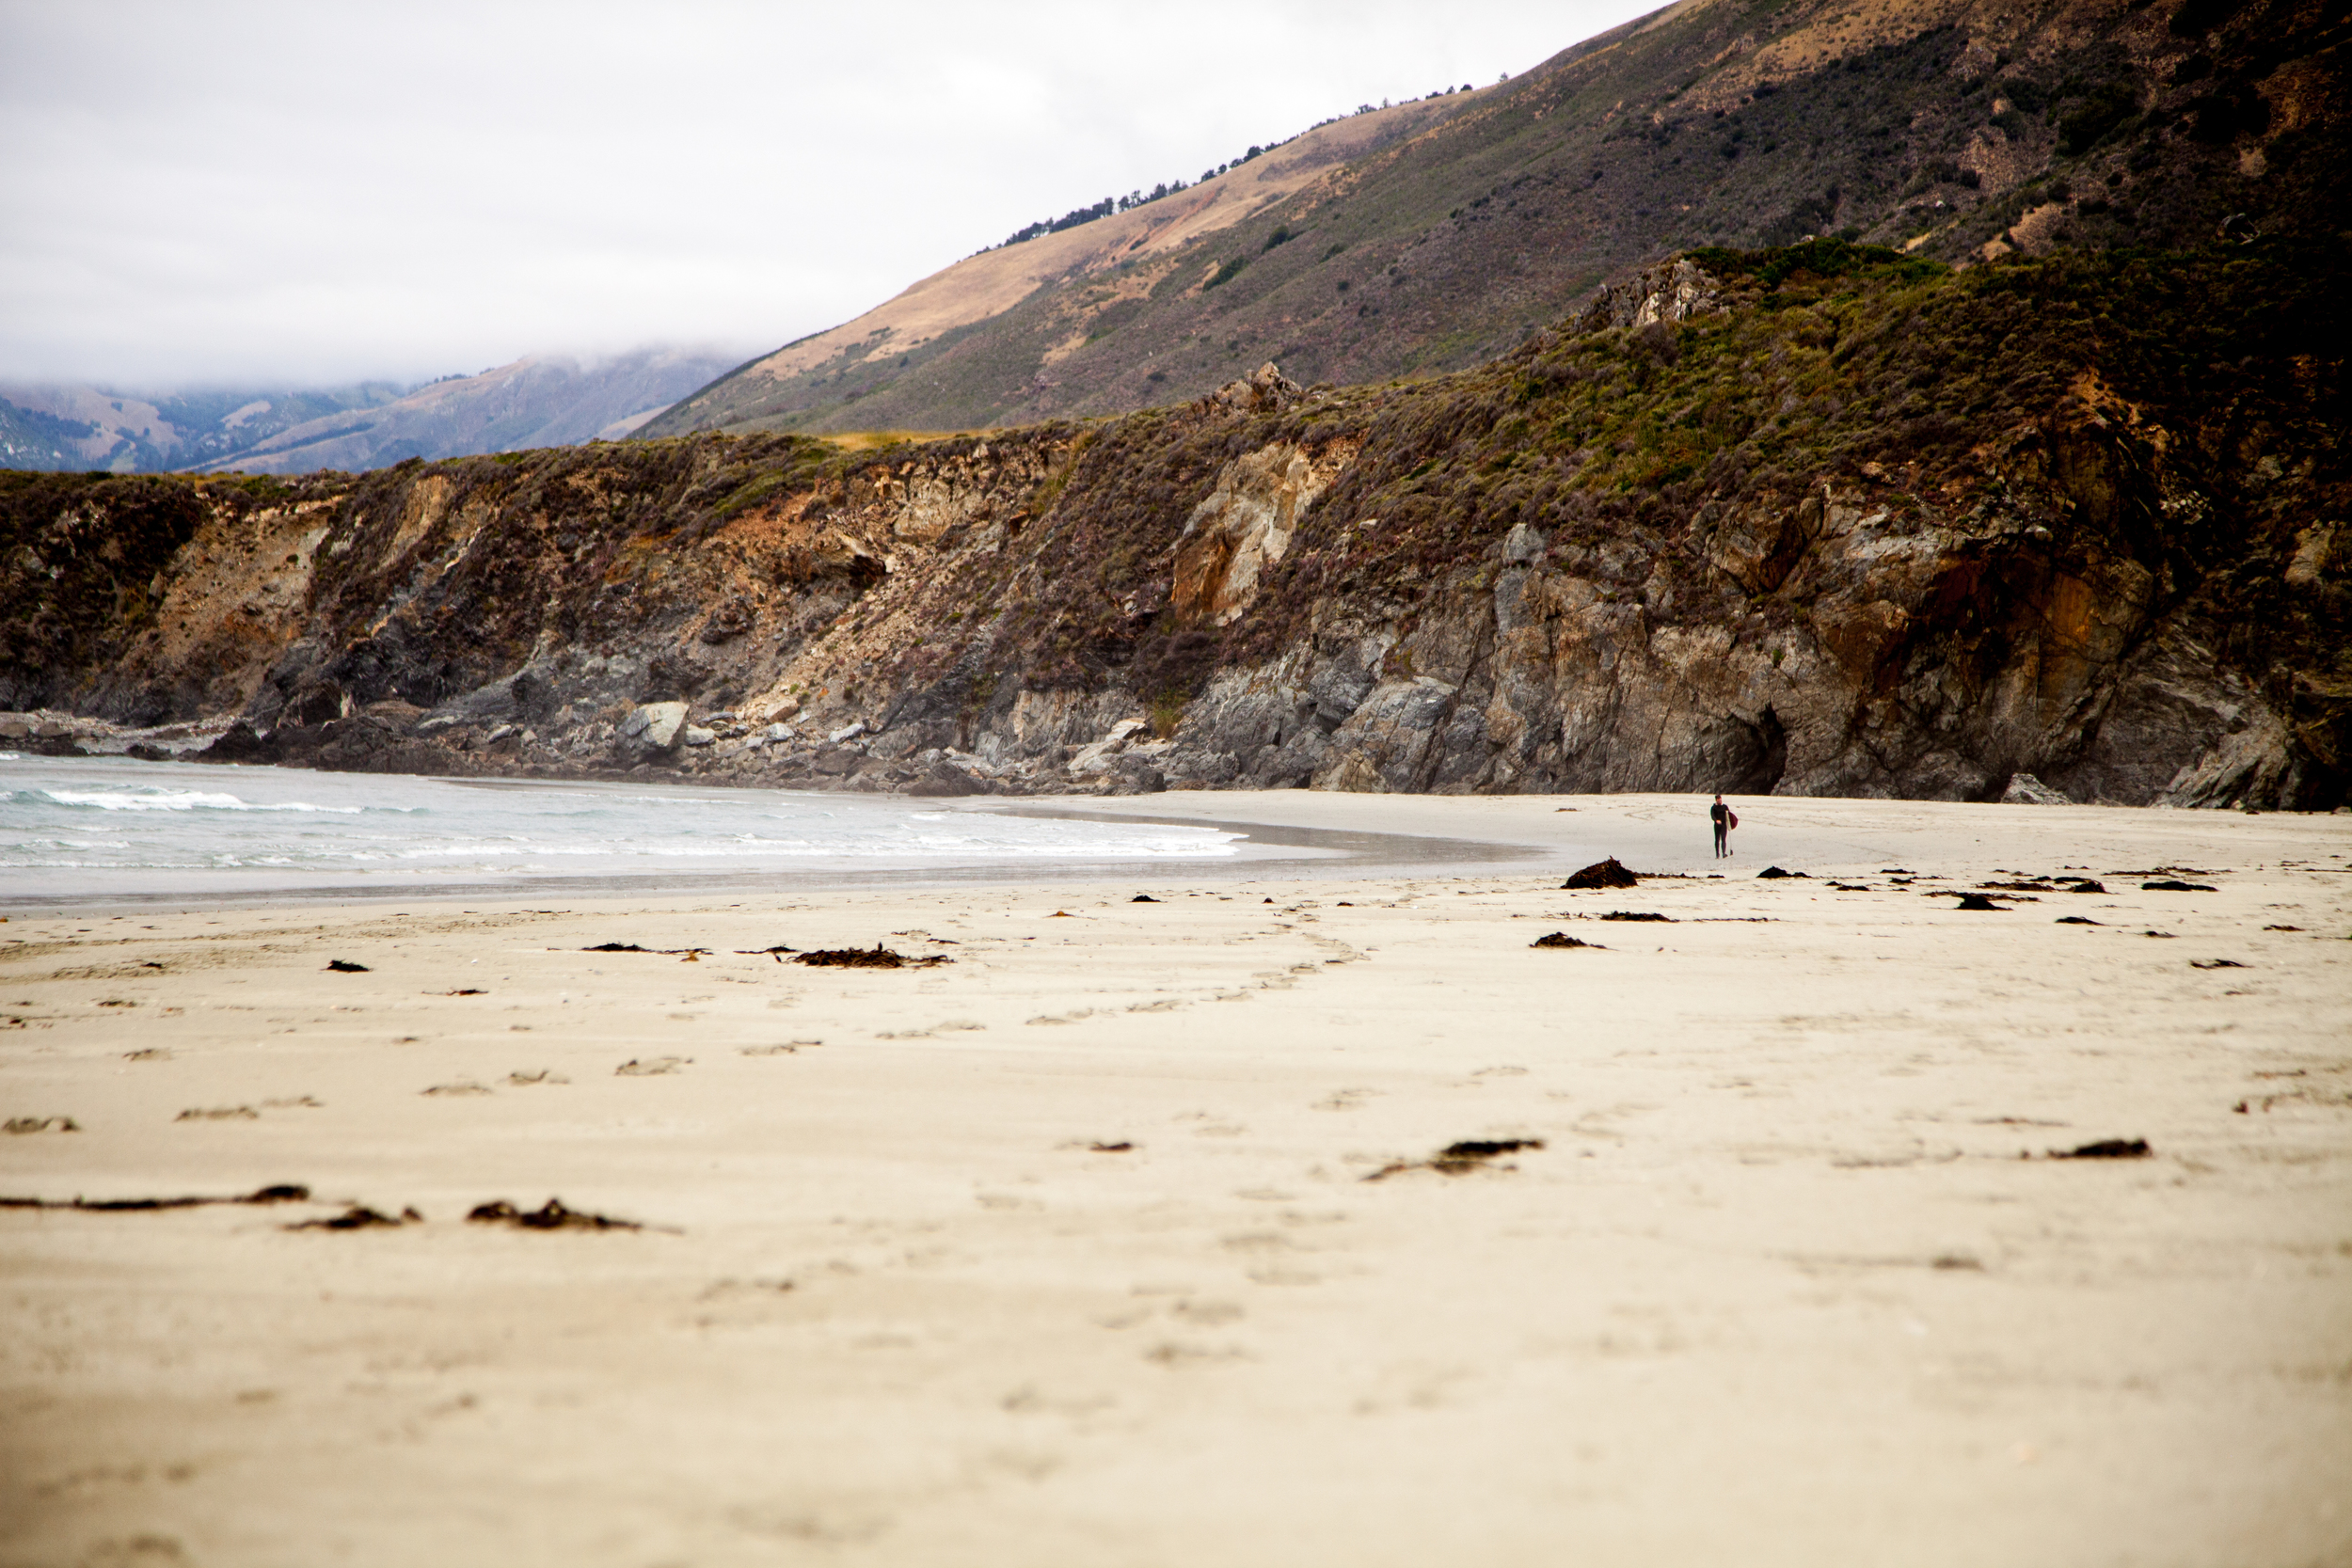 This was from a road trip down the coast of Big Sur, which I'm writing about in part for a story for REI.com.We camped, surfed, biked, hiked, roasted marshmallows. Good times!